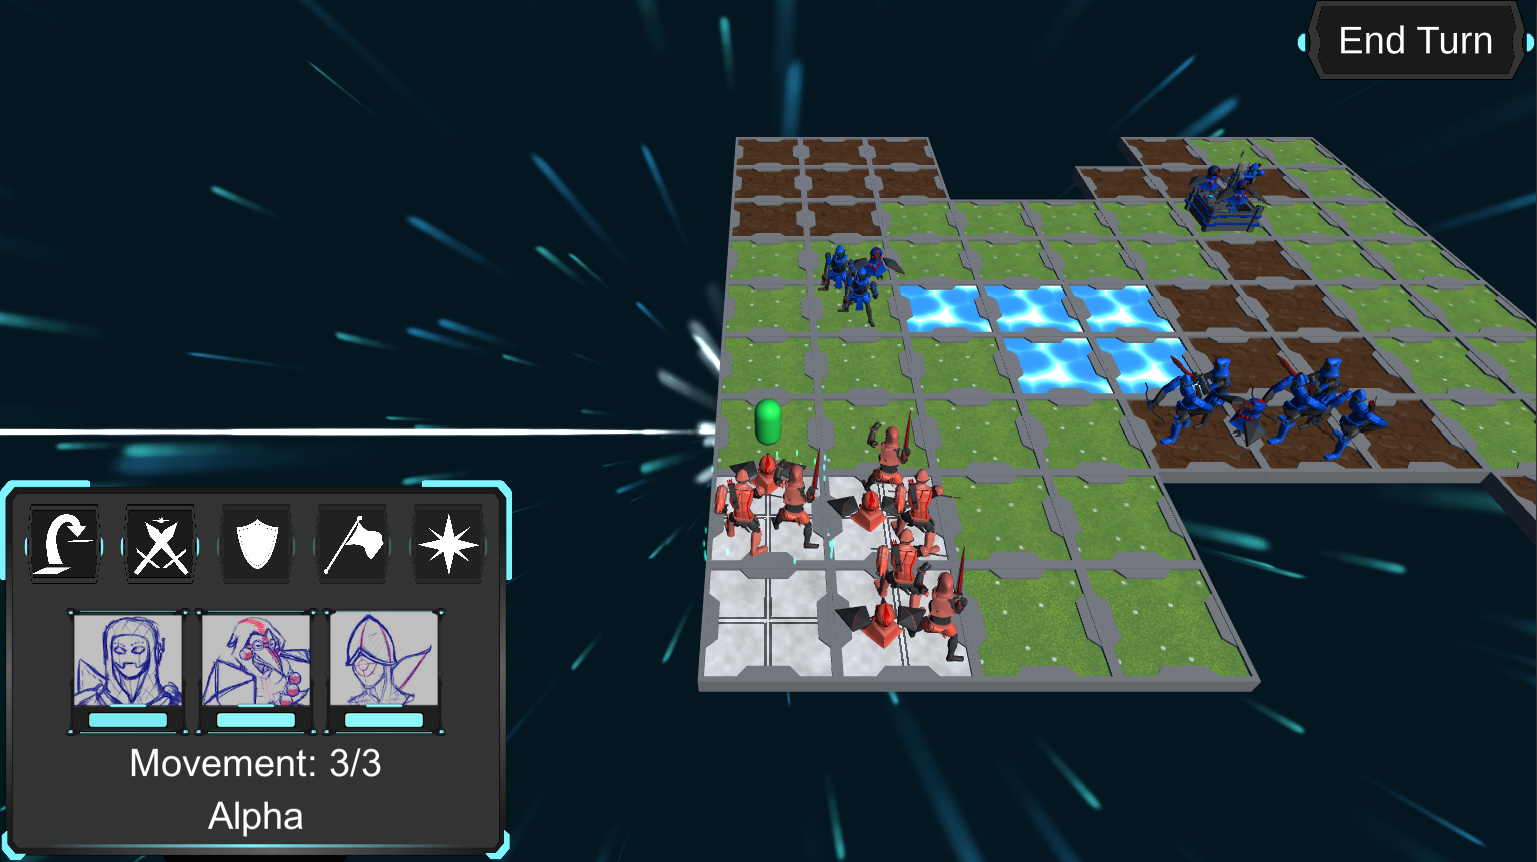 Turn-Based Strategy, reminiscent of classic strategy games!